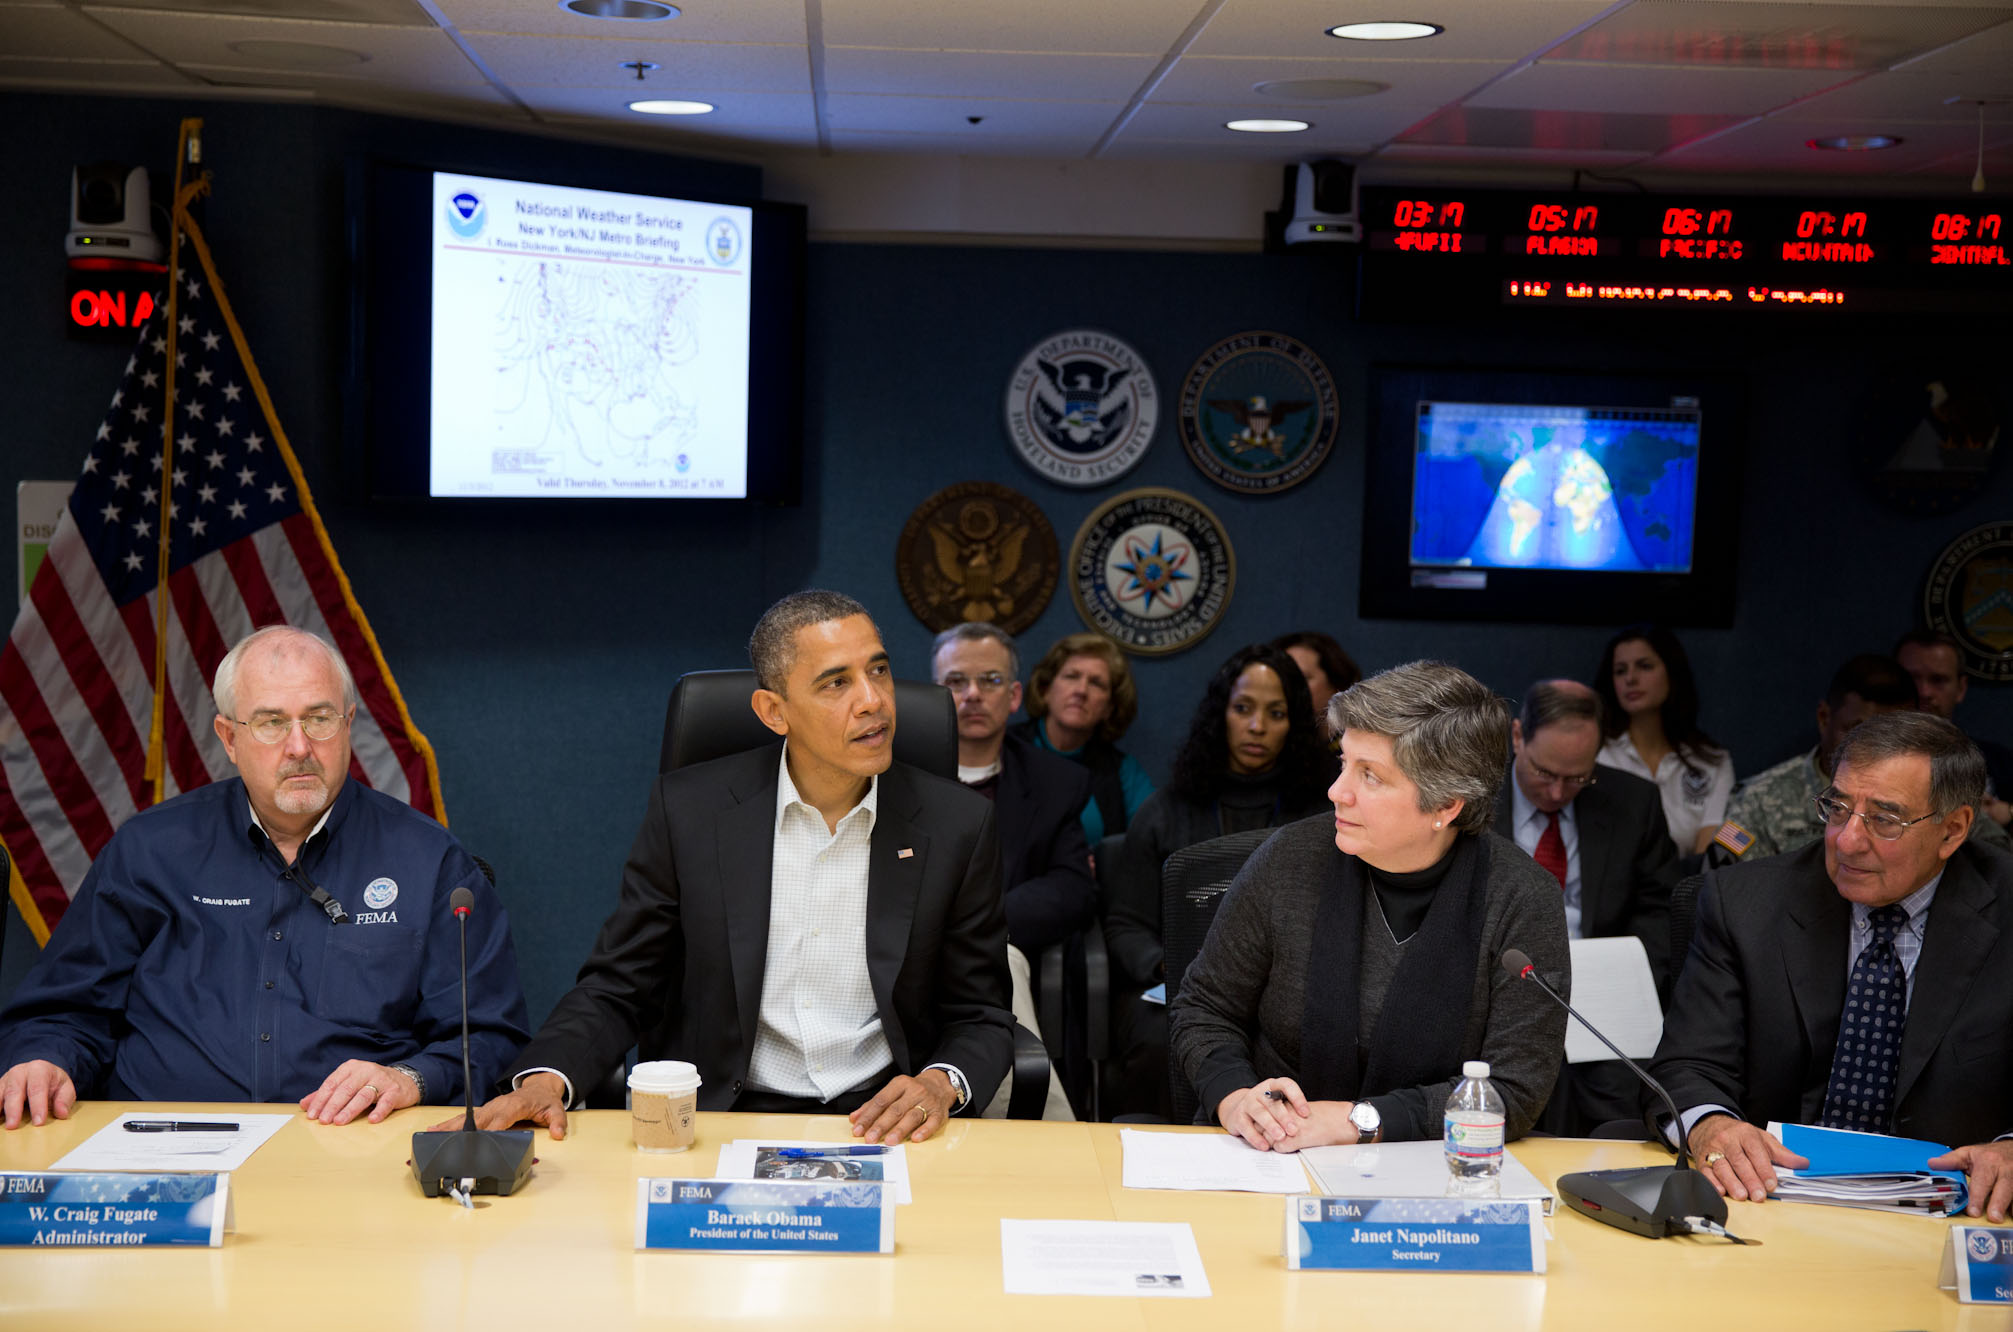 President Obama at FEMA Briefing Nov 3, 2012